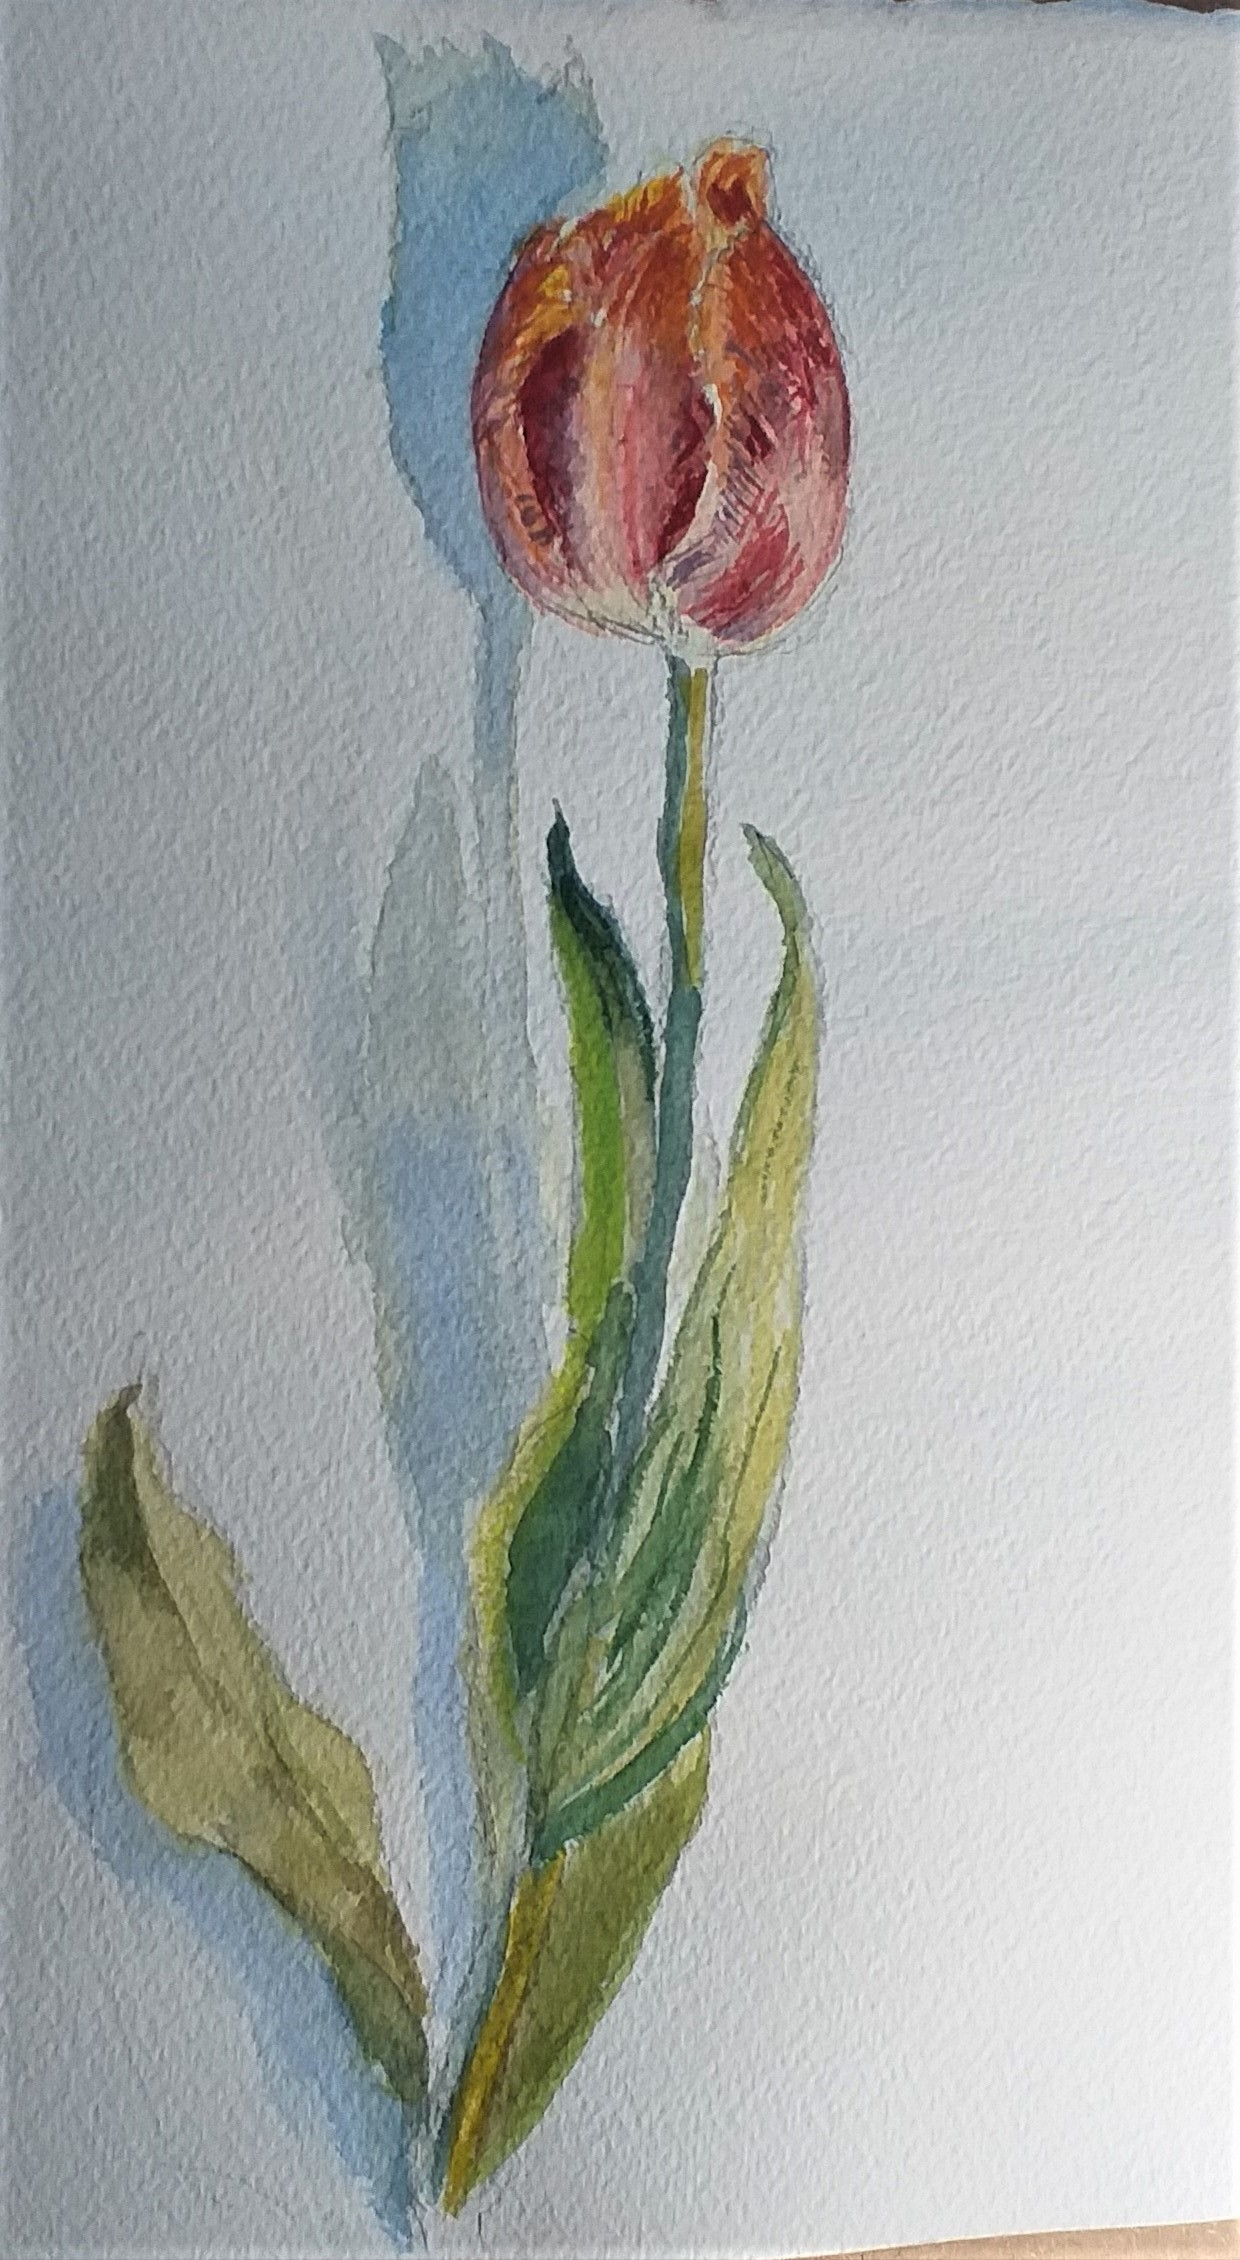 Working from direct observation at Art Watercolour classes in Kidderminster Worcestershire